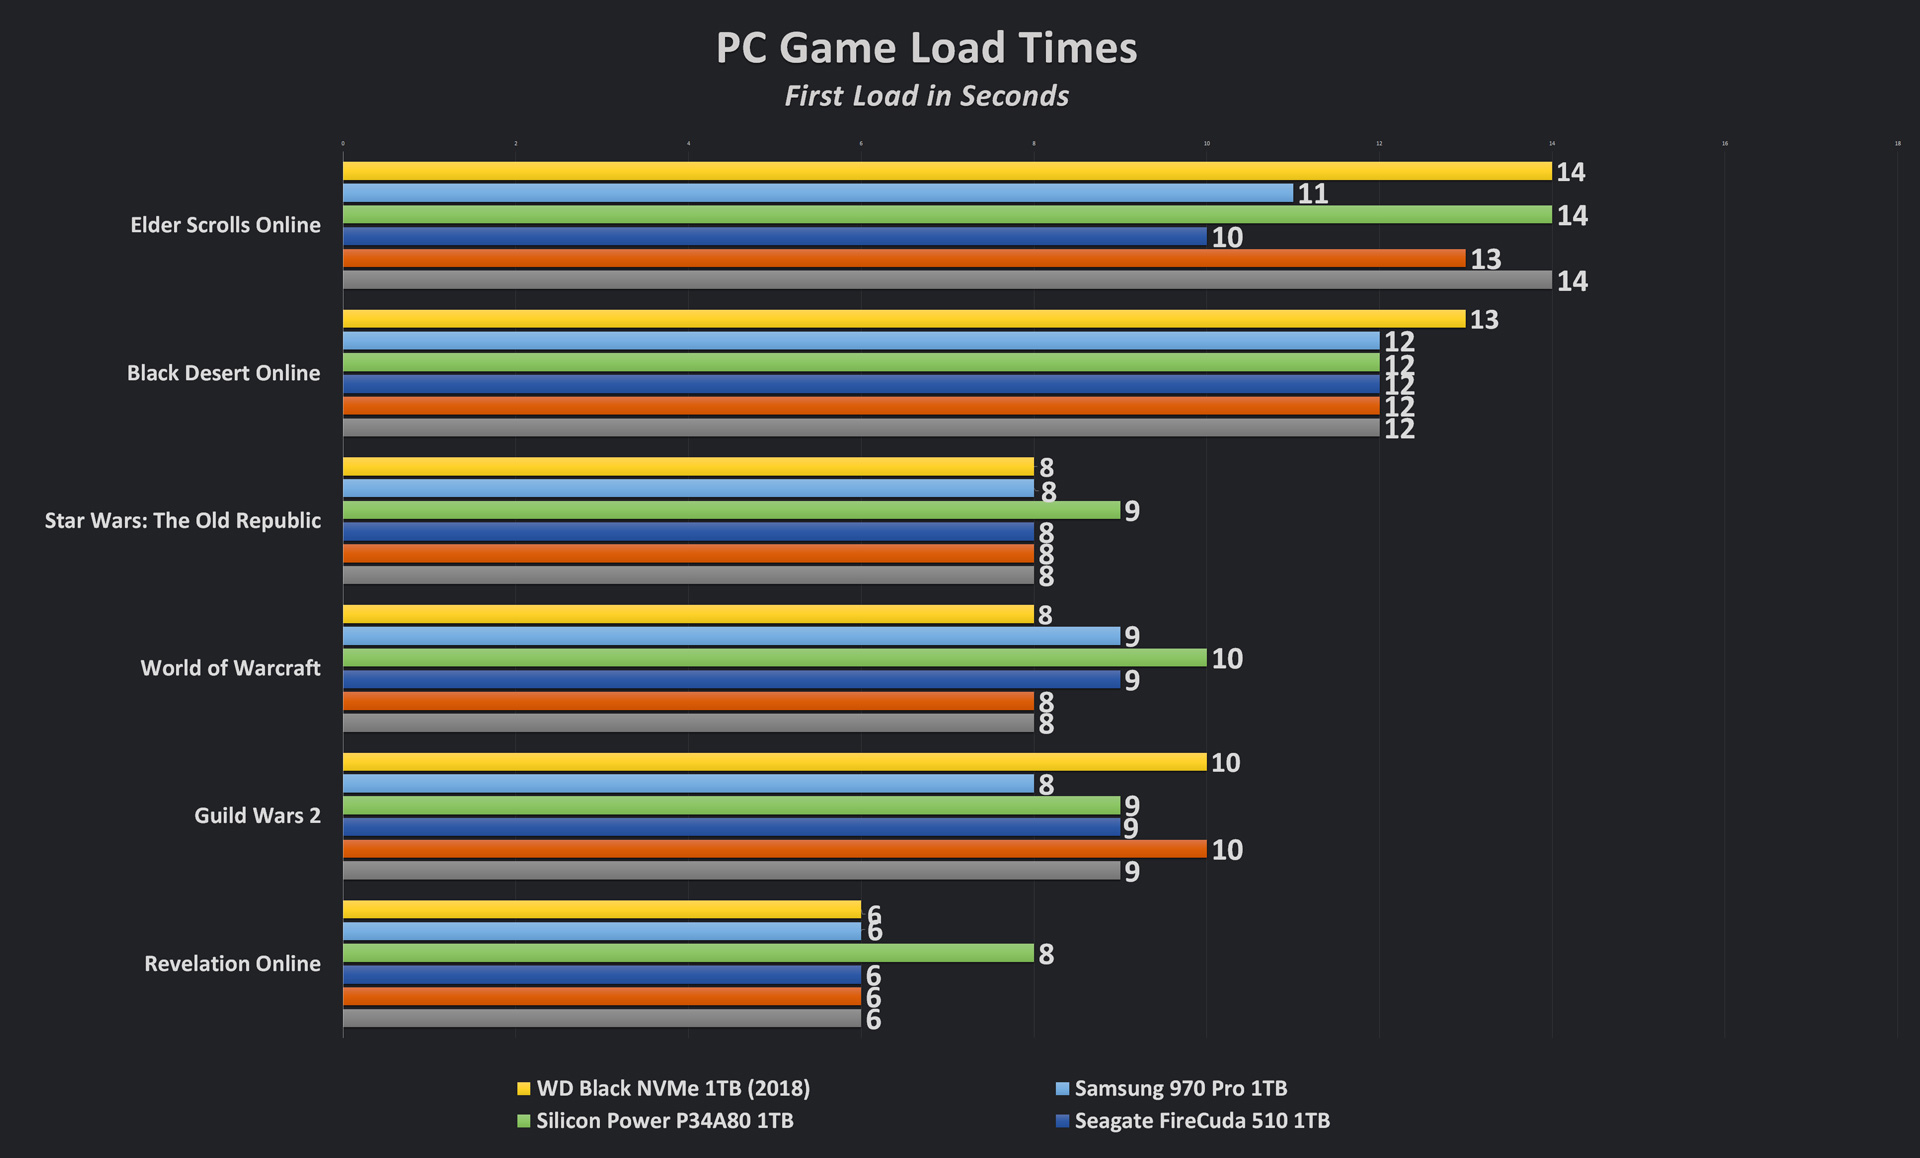 Silicon Power US70 PC Game Load Times